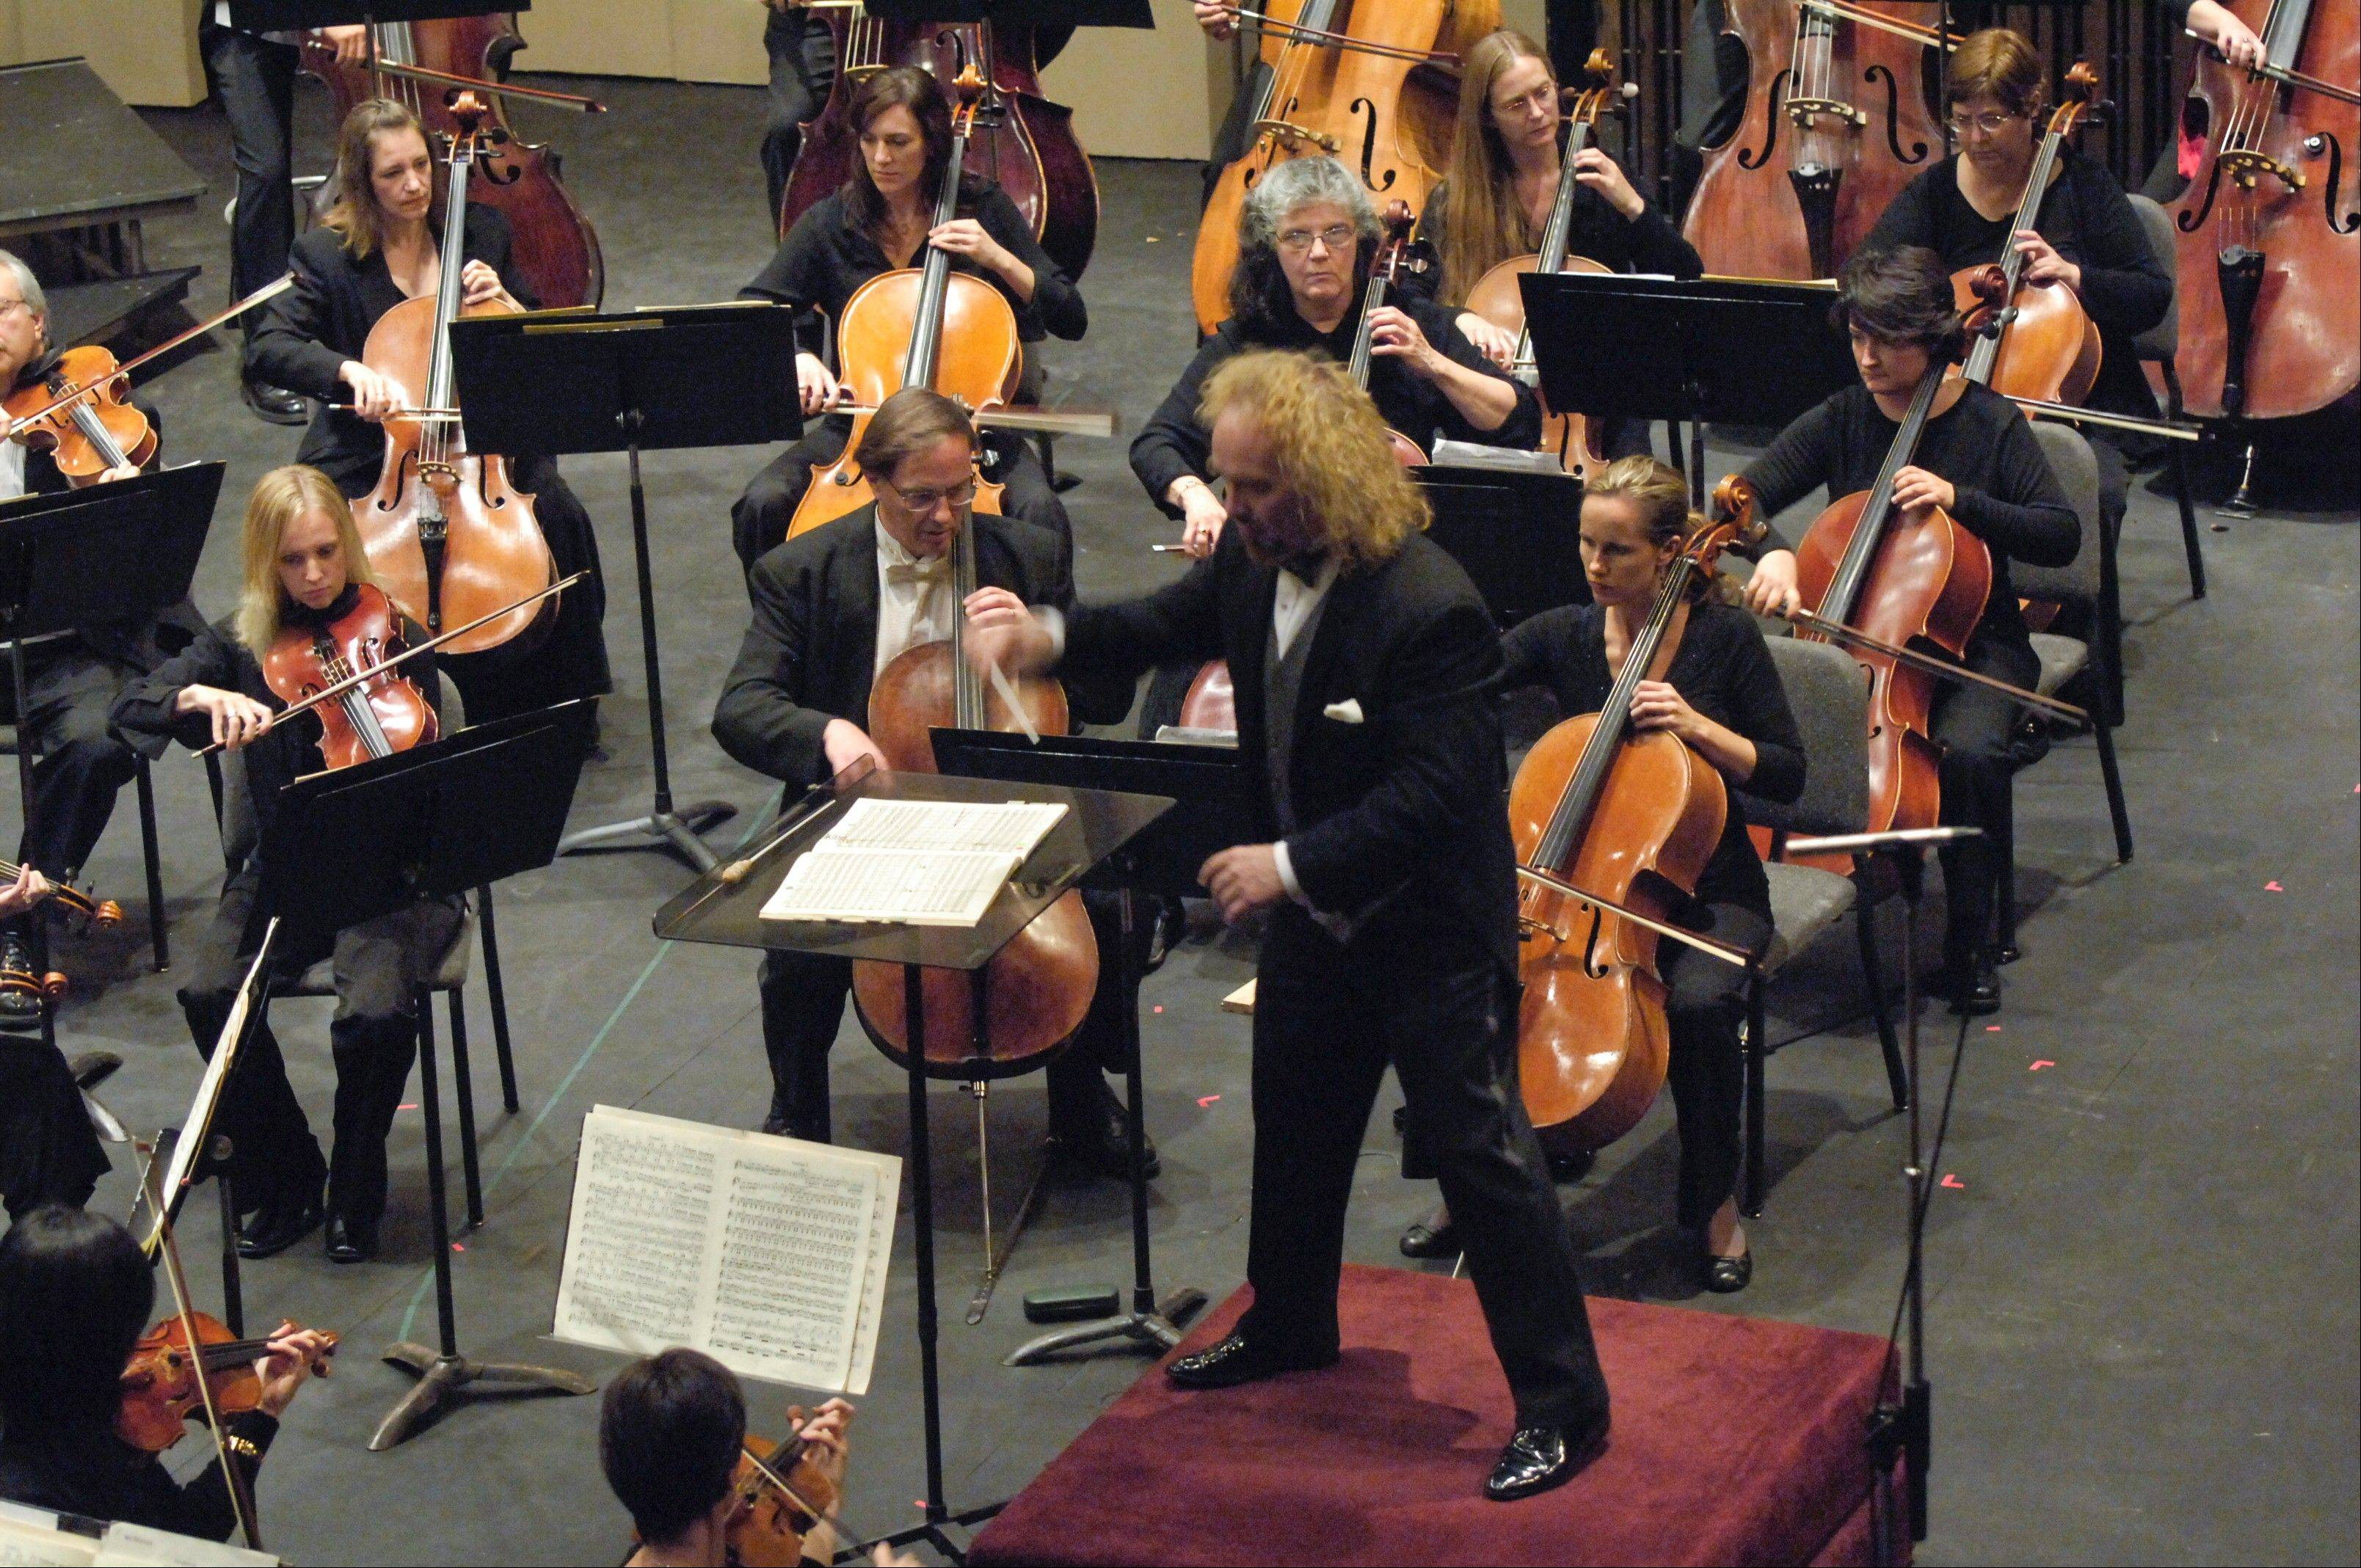 Conductor Kirk Muspratt of the New Philharmonic says the group is hopeful patrons will support the group financially to ensure it remains at the McAninch Arts Center at the College of DuPage.